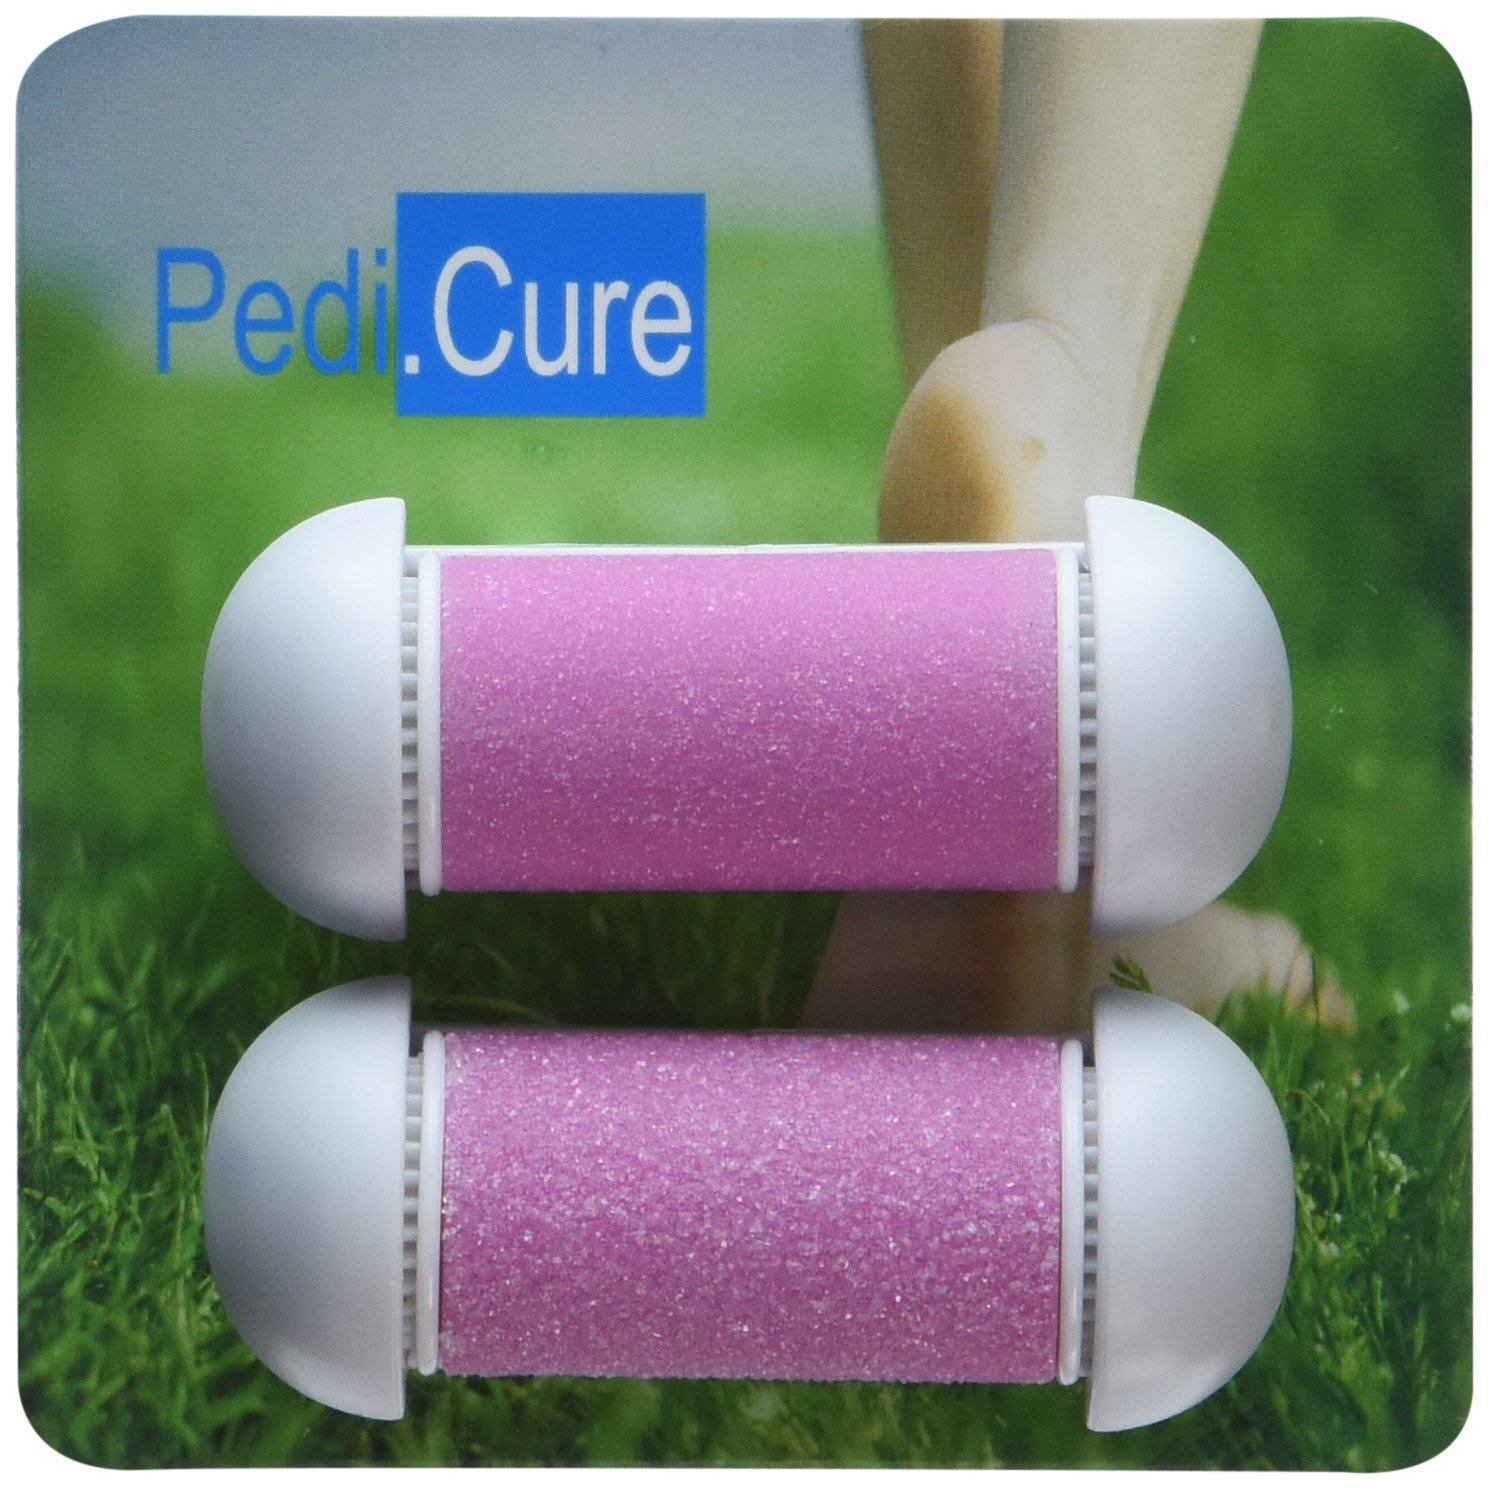 Replacement Rollers - 2-Pack Refill Roller Heads for Pedi.Cure Solutions, HOLIDAY DALE! Best Callus/Dead Skin Remover, Professional Pedicure Foot File Tool, Pumice Roller, Satisfaction Guaranteed